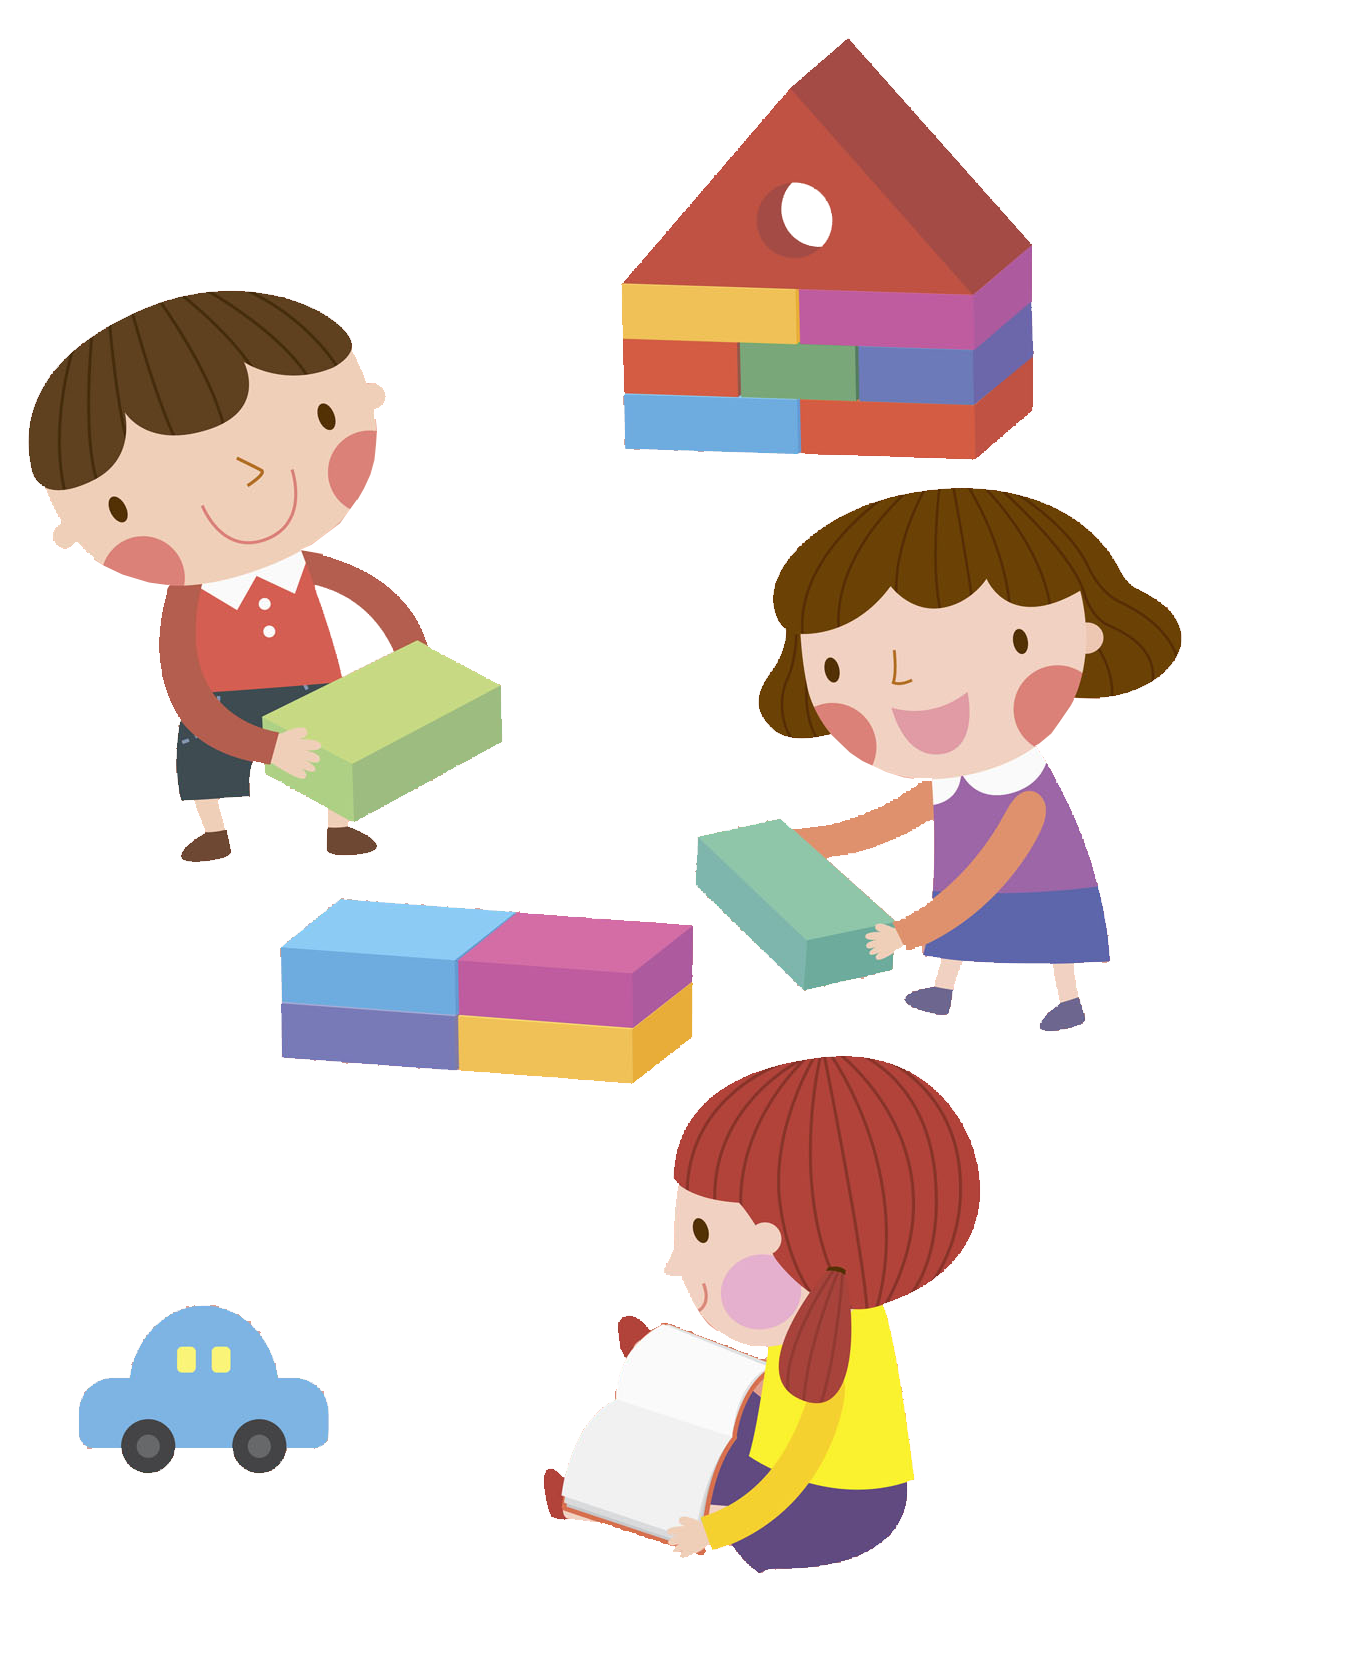 Kids building blocks clipart black and white Block Child Play Clip art - Illustration children playing with ... black and white